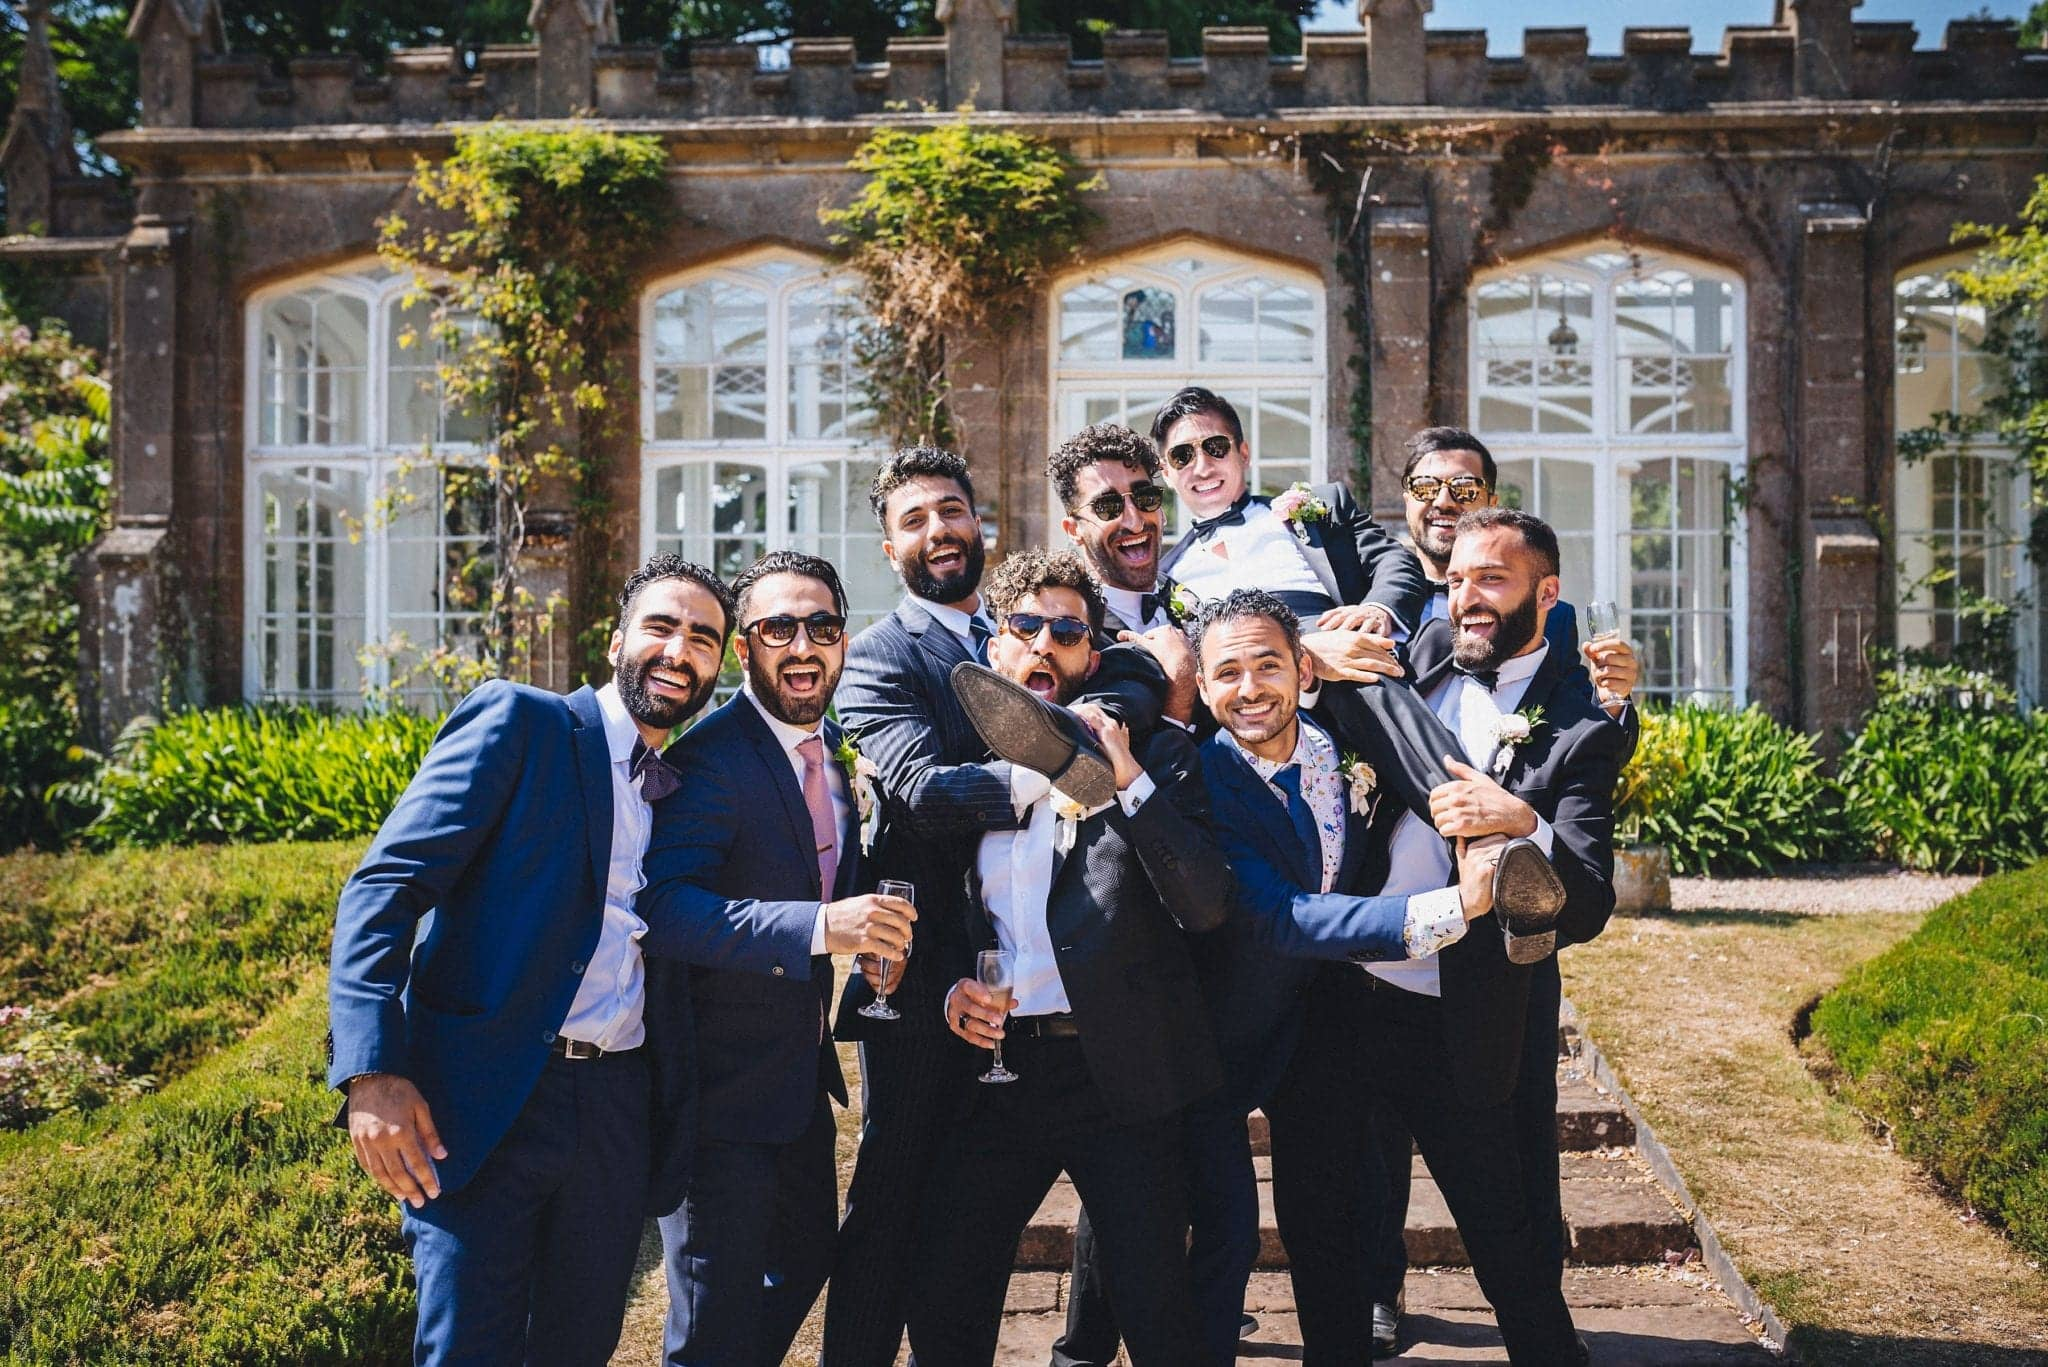 Groomsmen lift up the groom and cheer